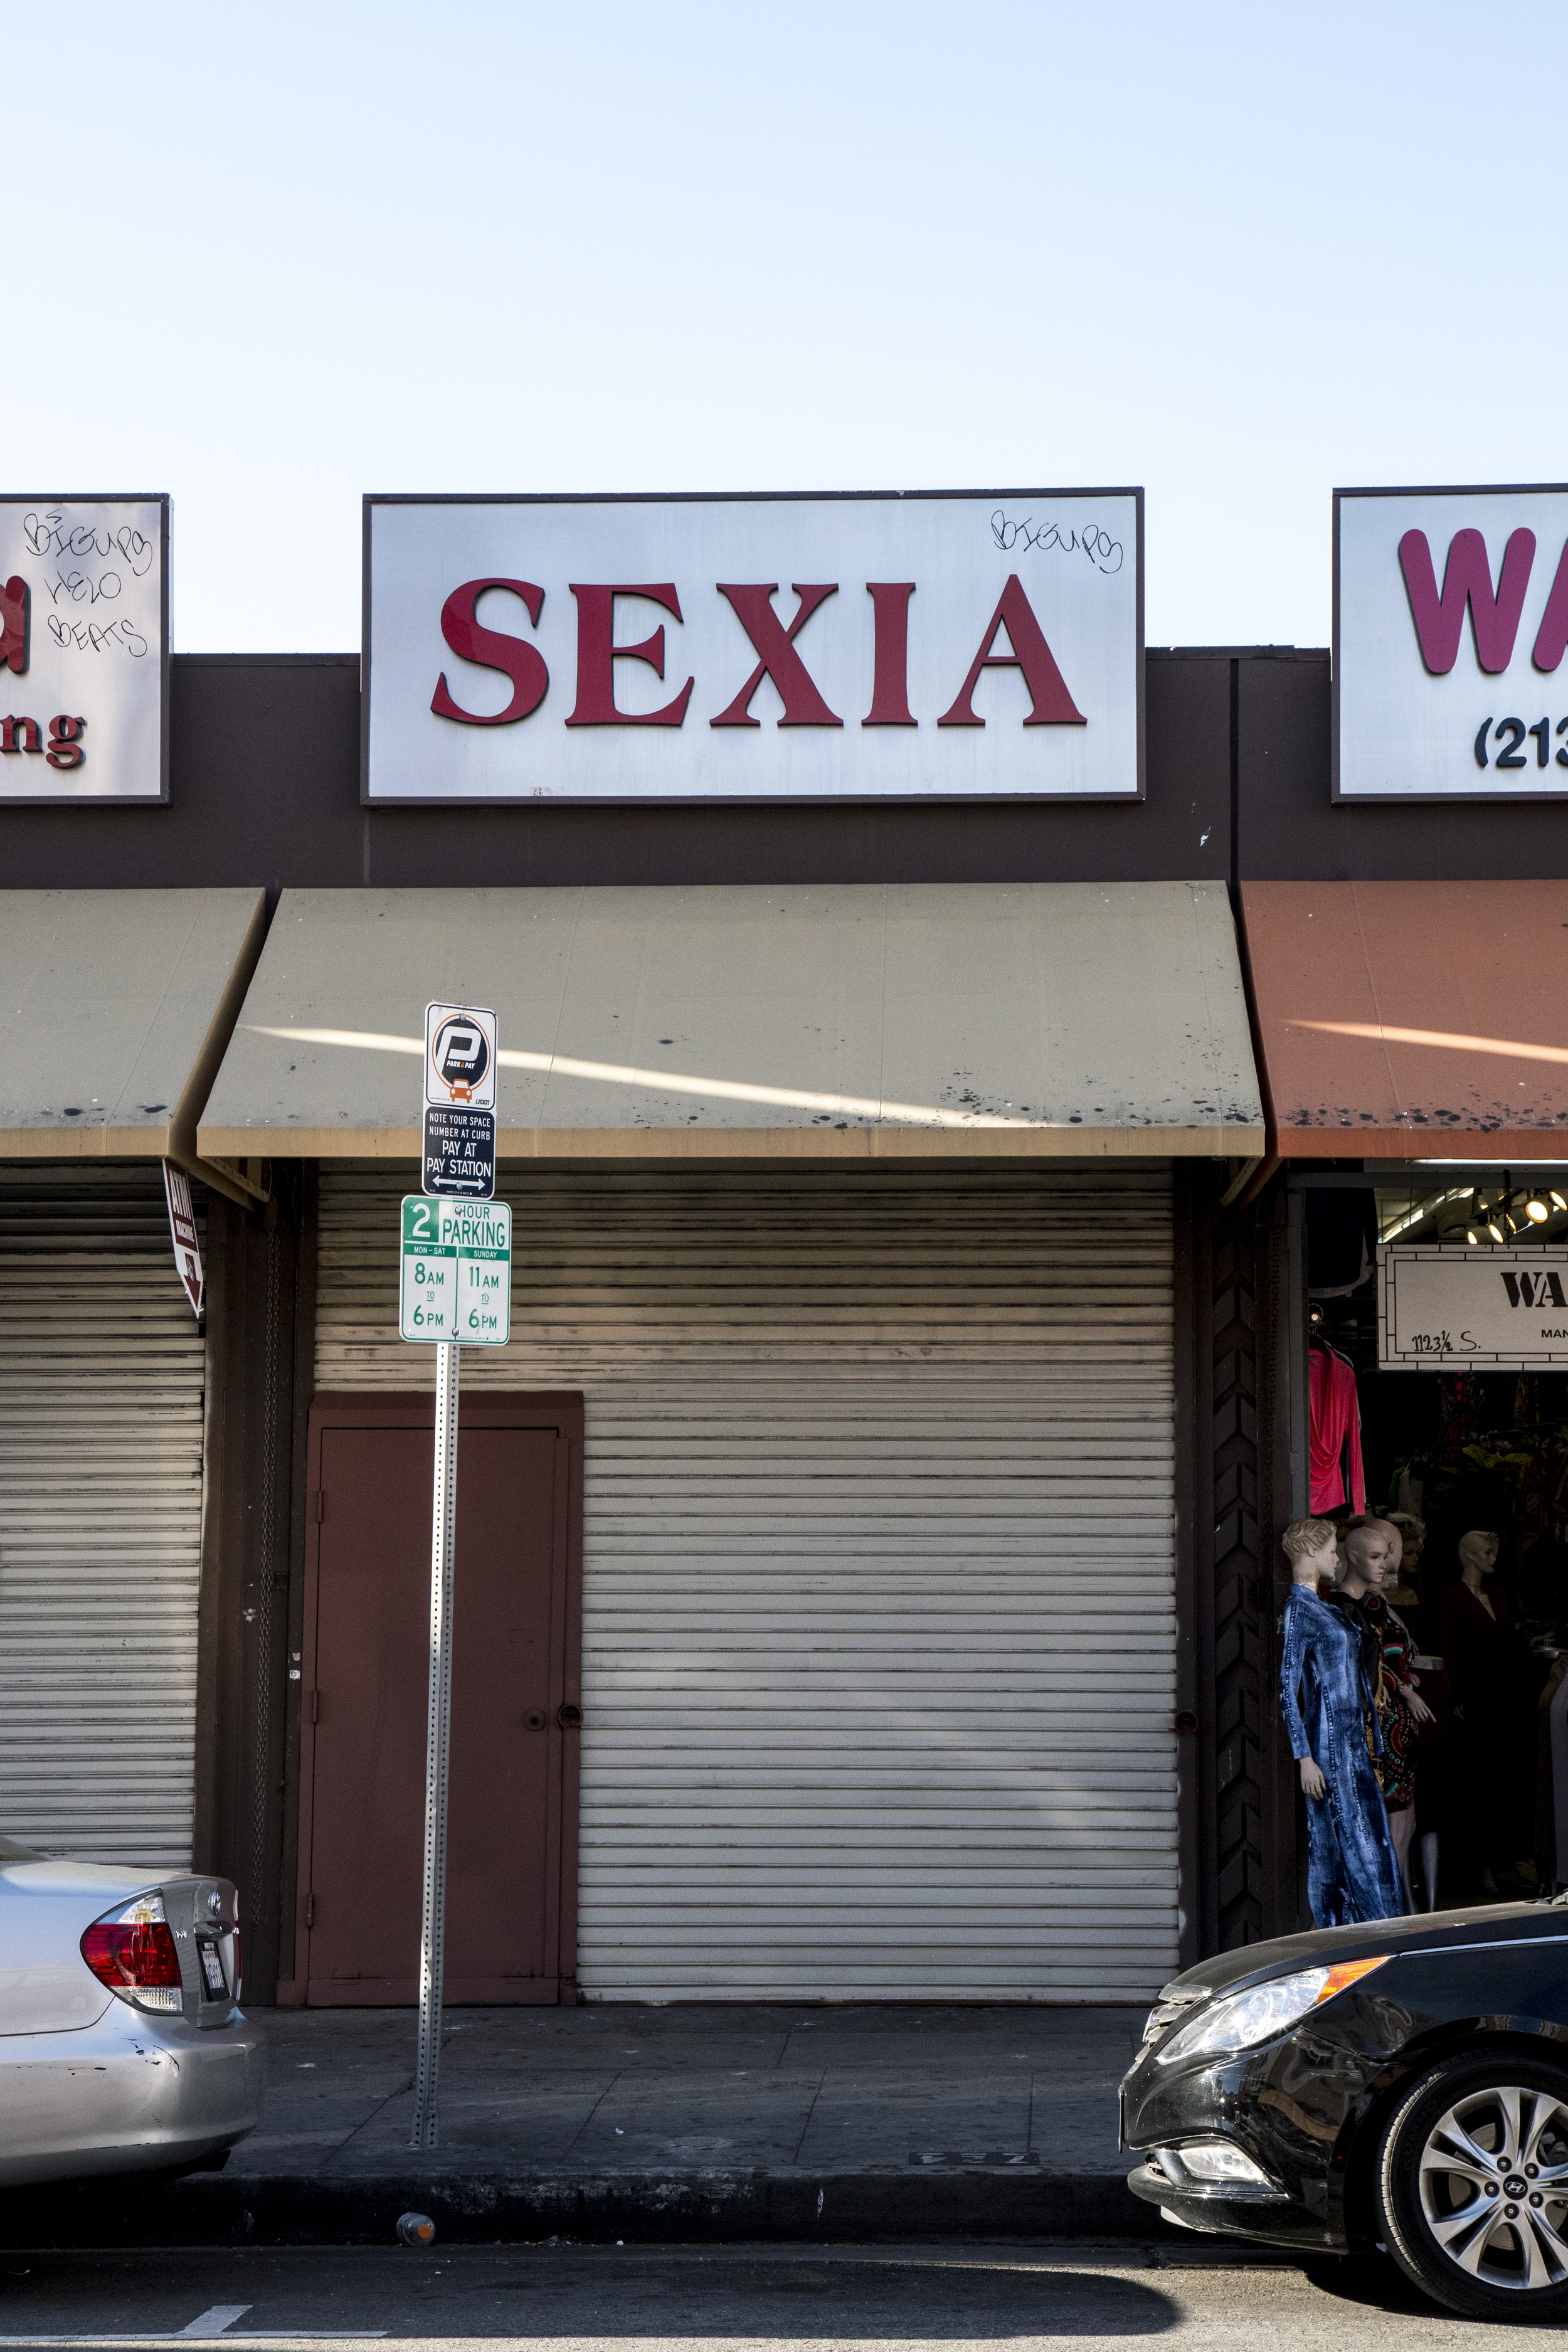 Sadly Sexia wasnt open that day